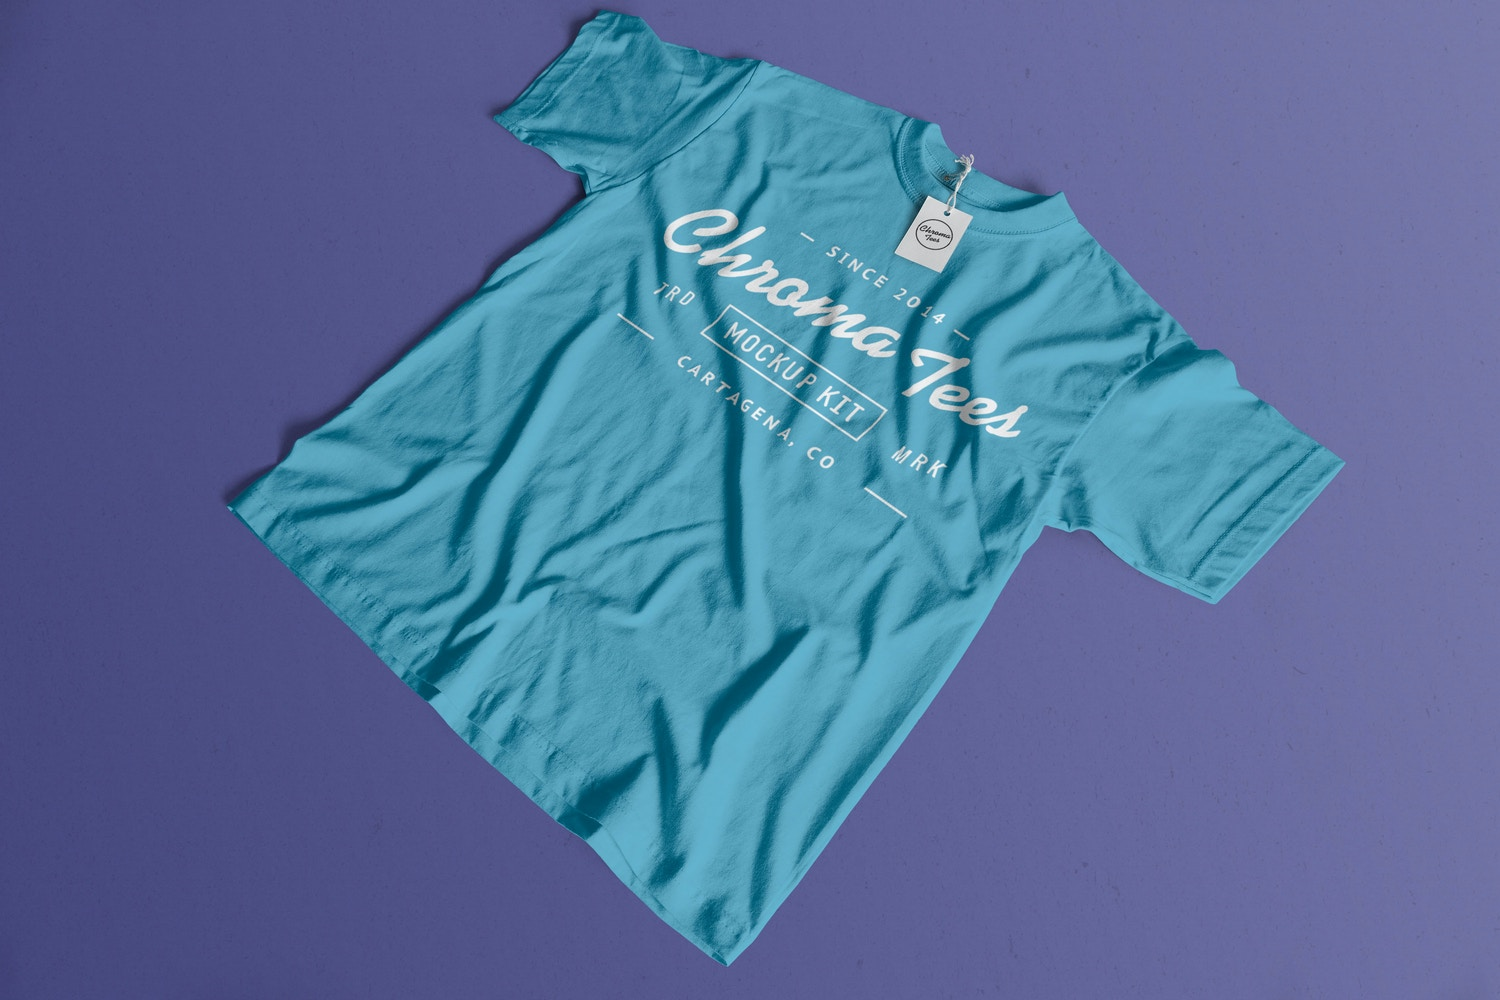 T-Shirt Mockup 02 by Antonio Padilla on Original Mockups